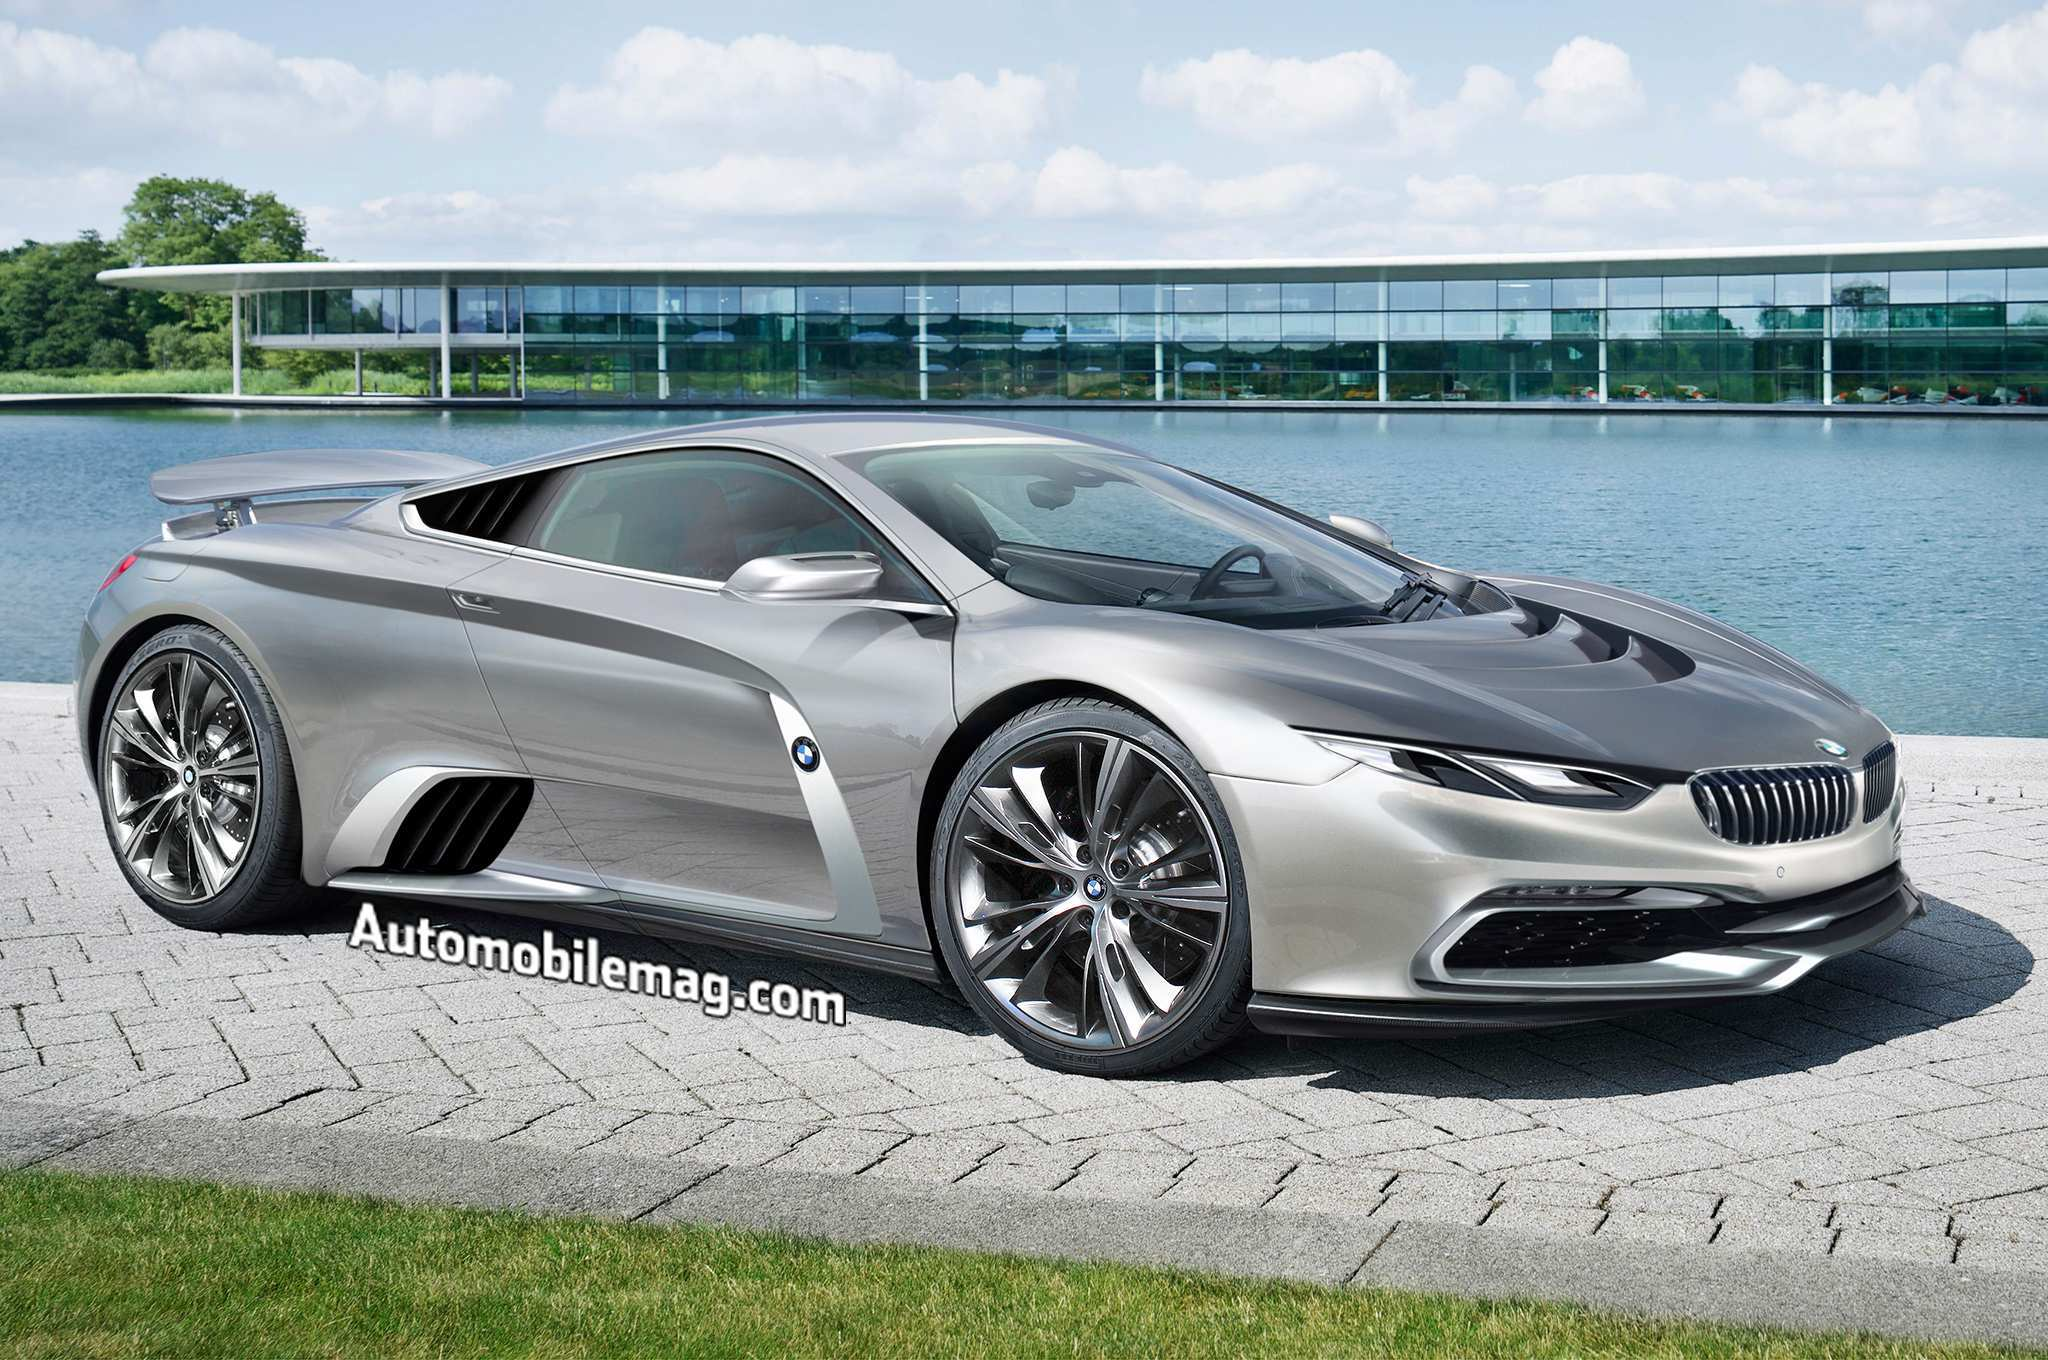 15 Concept of Lexus Supercar 2020 Pricing with Lexus Supercar 2020